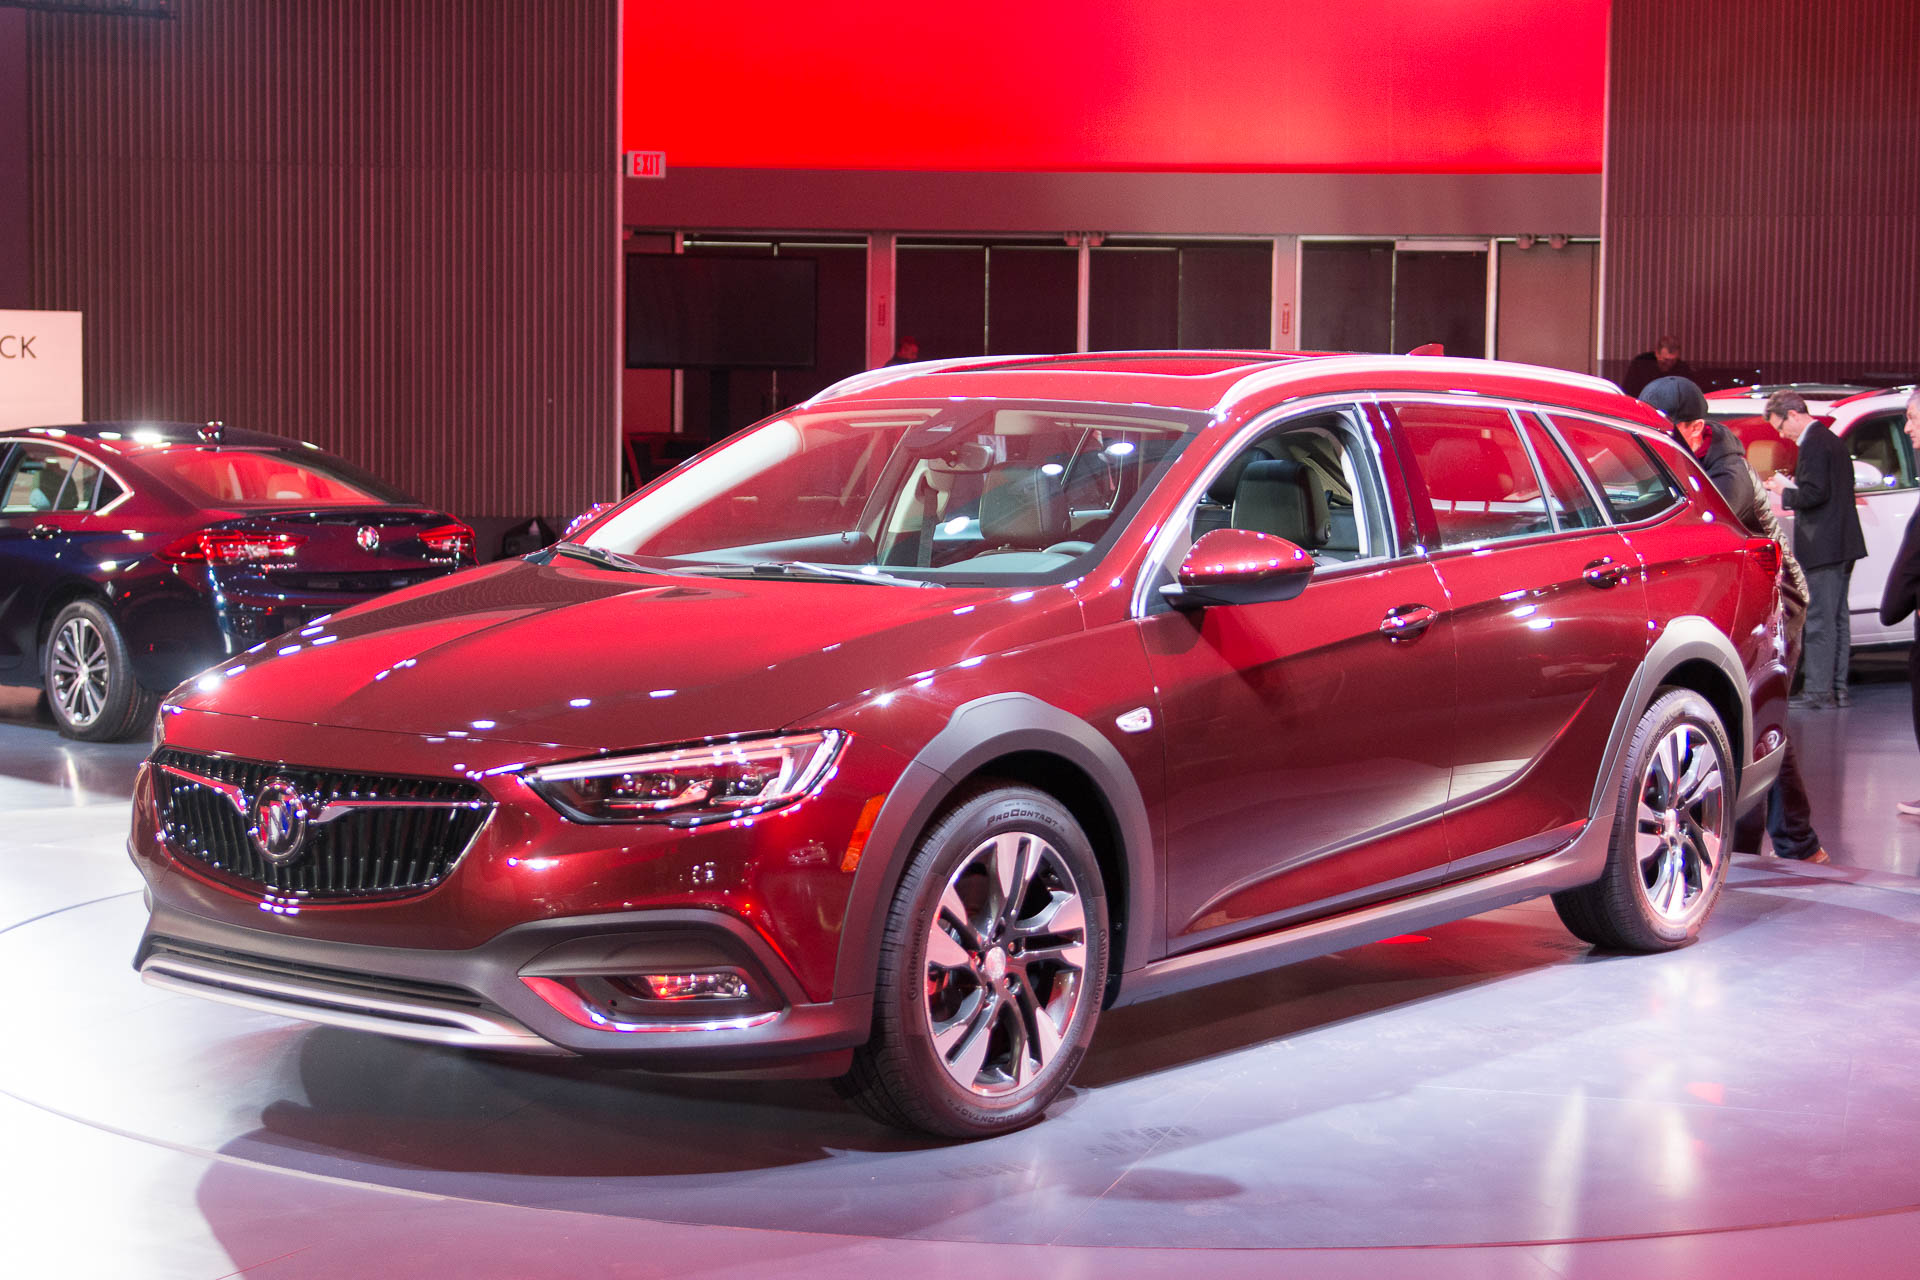 Wagons Whoa 2018 Buick Regal Tour X Costs 29 995 To Start